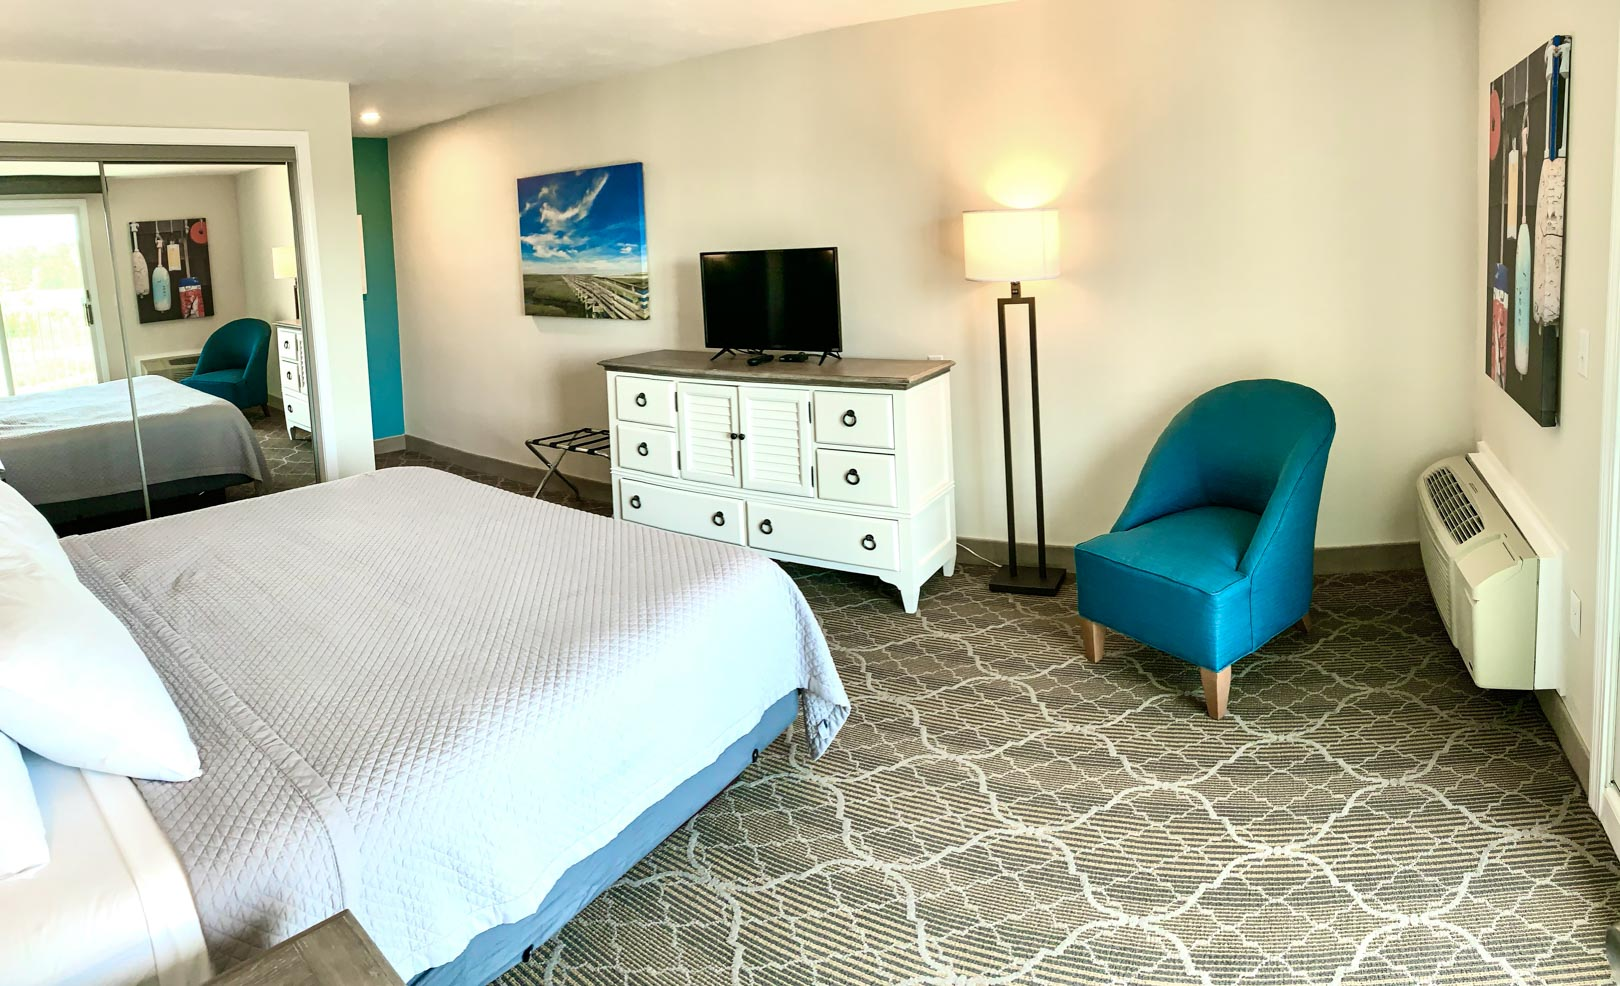 An expansive bedroom with two double beds at VRI's Riverview Resort in Massachusetts.